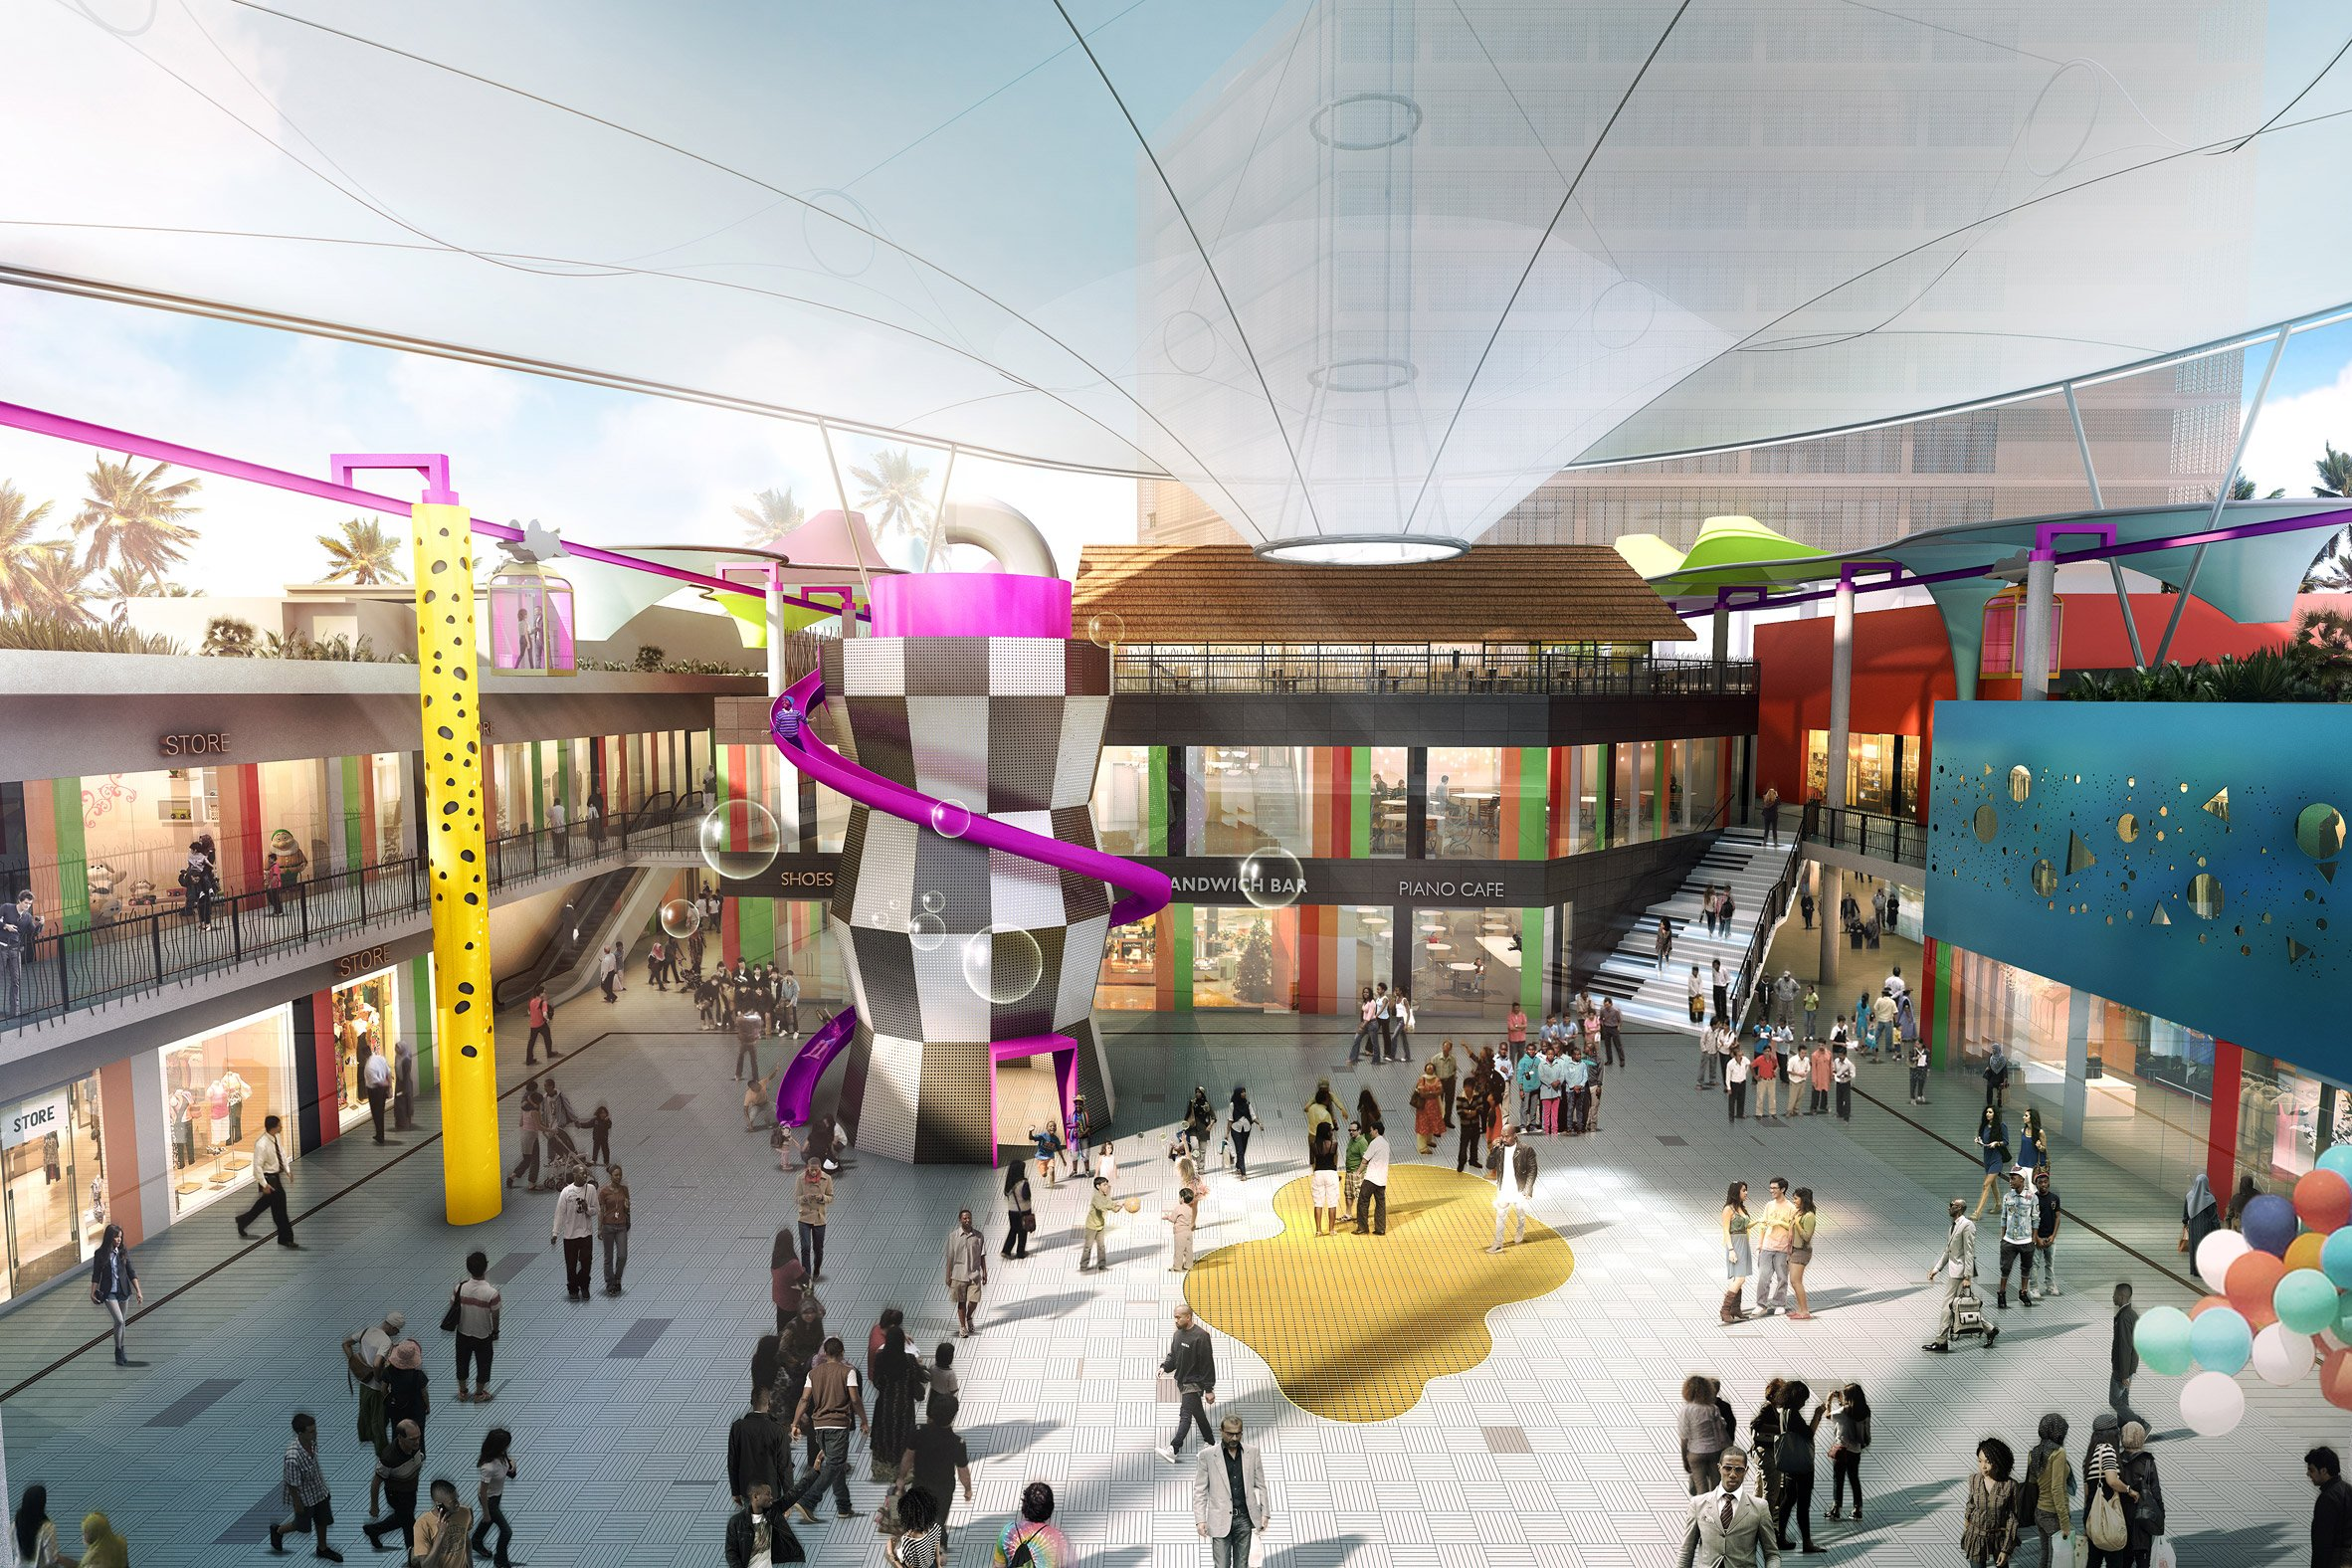 Will alsops only african project to be fun filled shopping centre